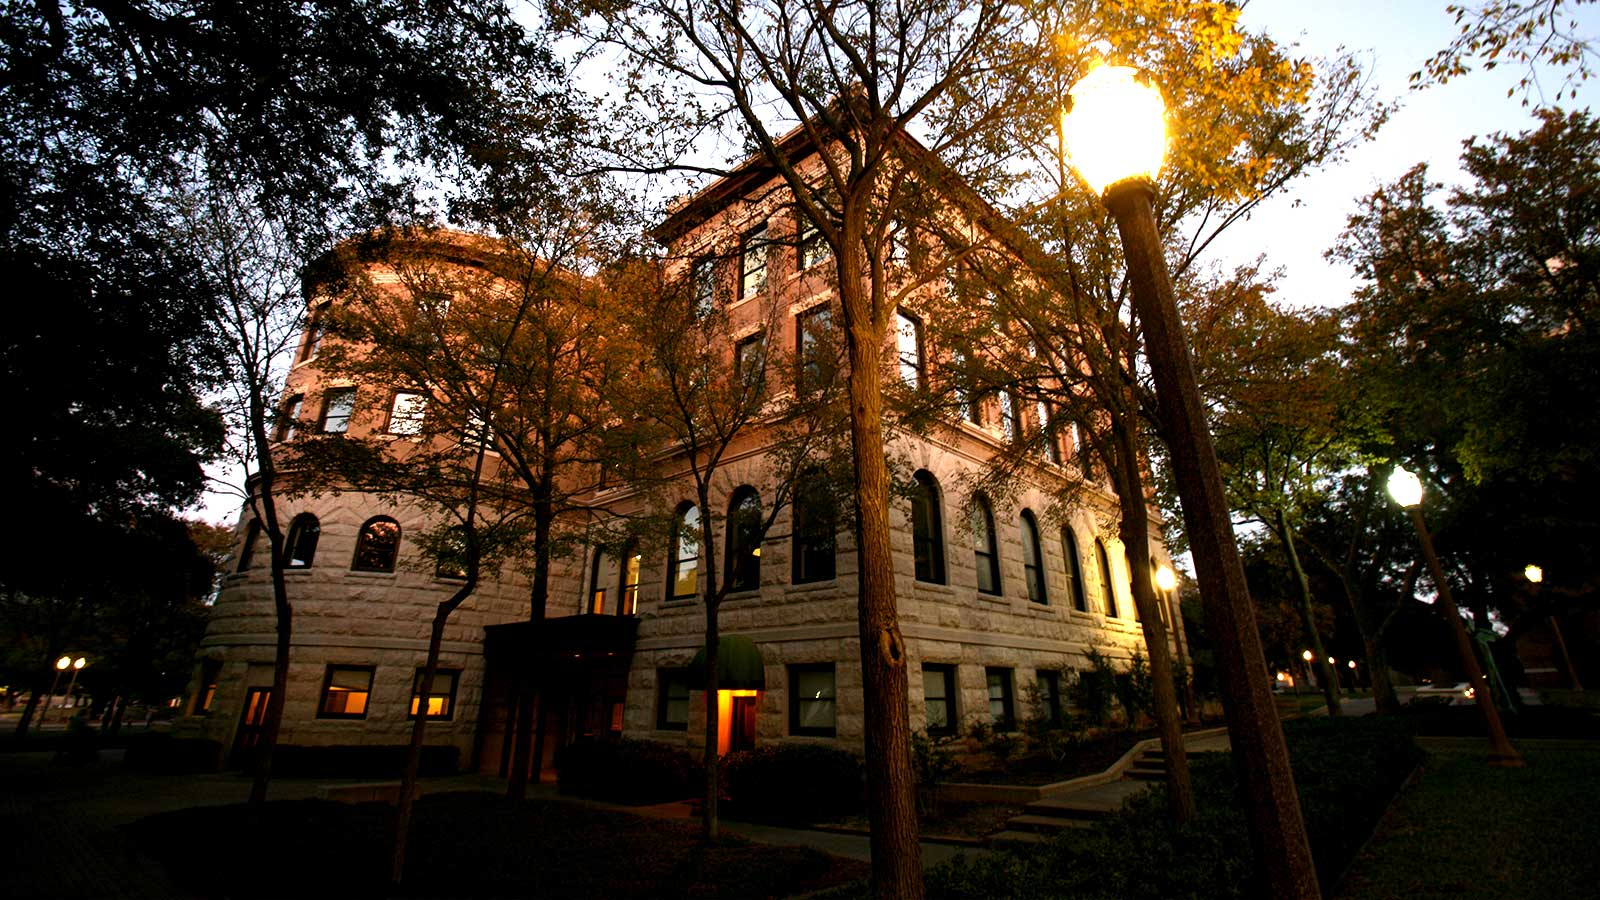 Carroll Science Hall, a Baylor addition nearly 15 years after Old Main and Burleson Hall, is the beautiful home to several Arts and Sciences programs.